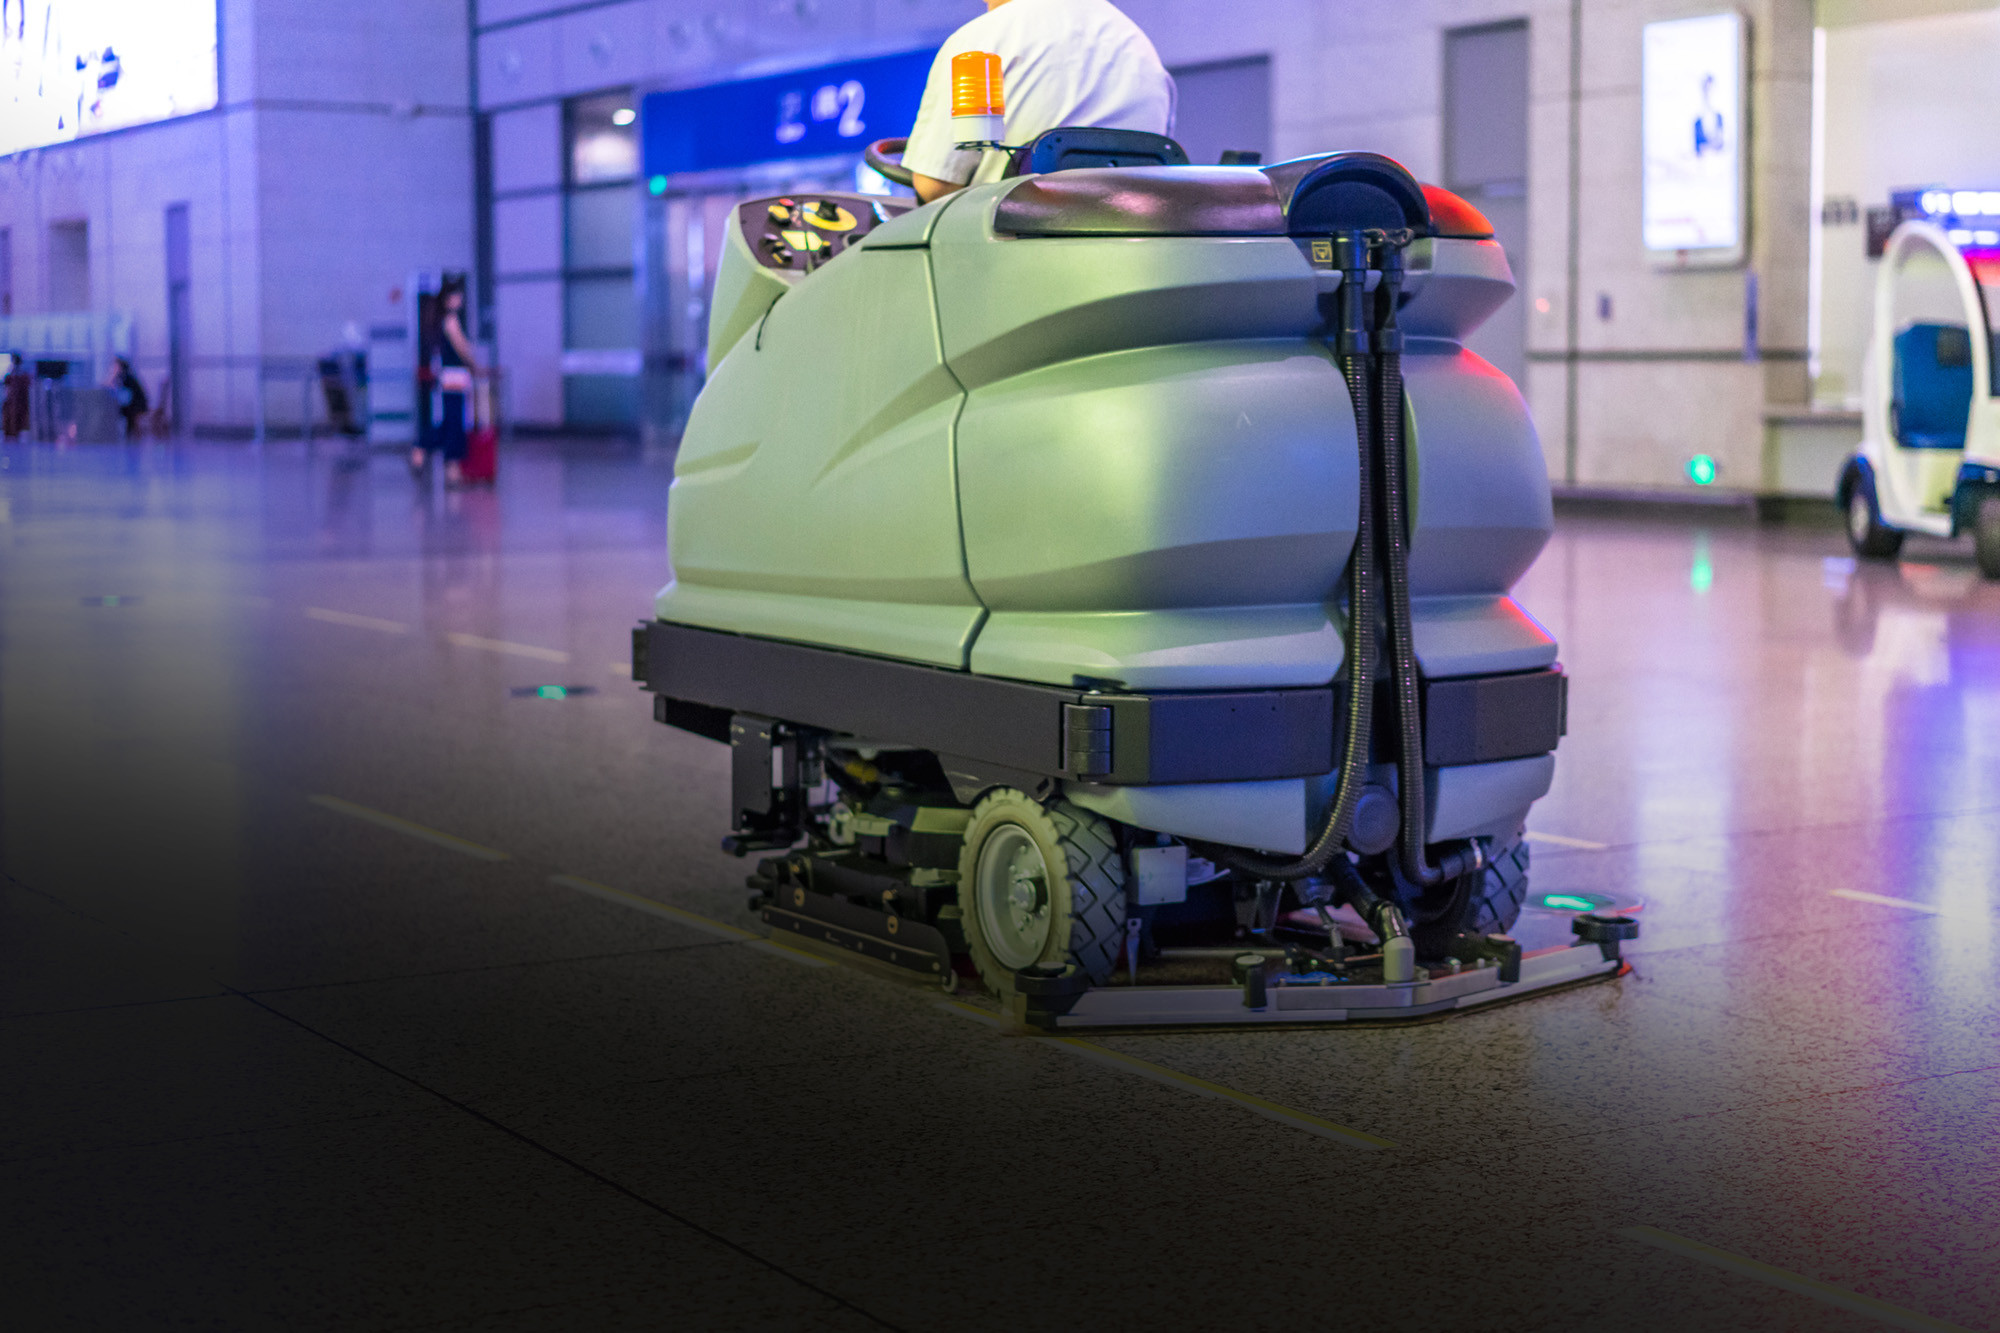 Electric powered cleaning machines for demanding applications